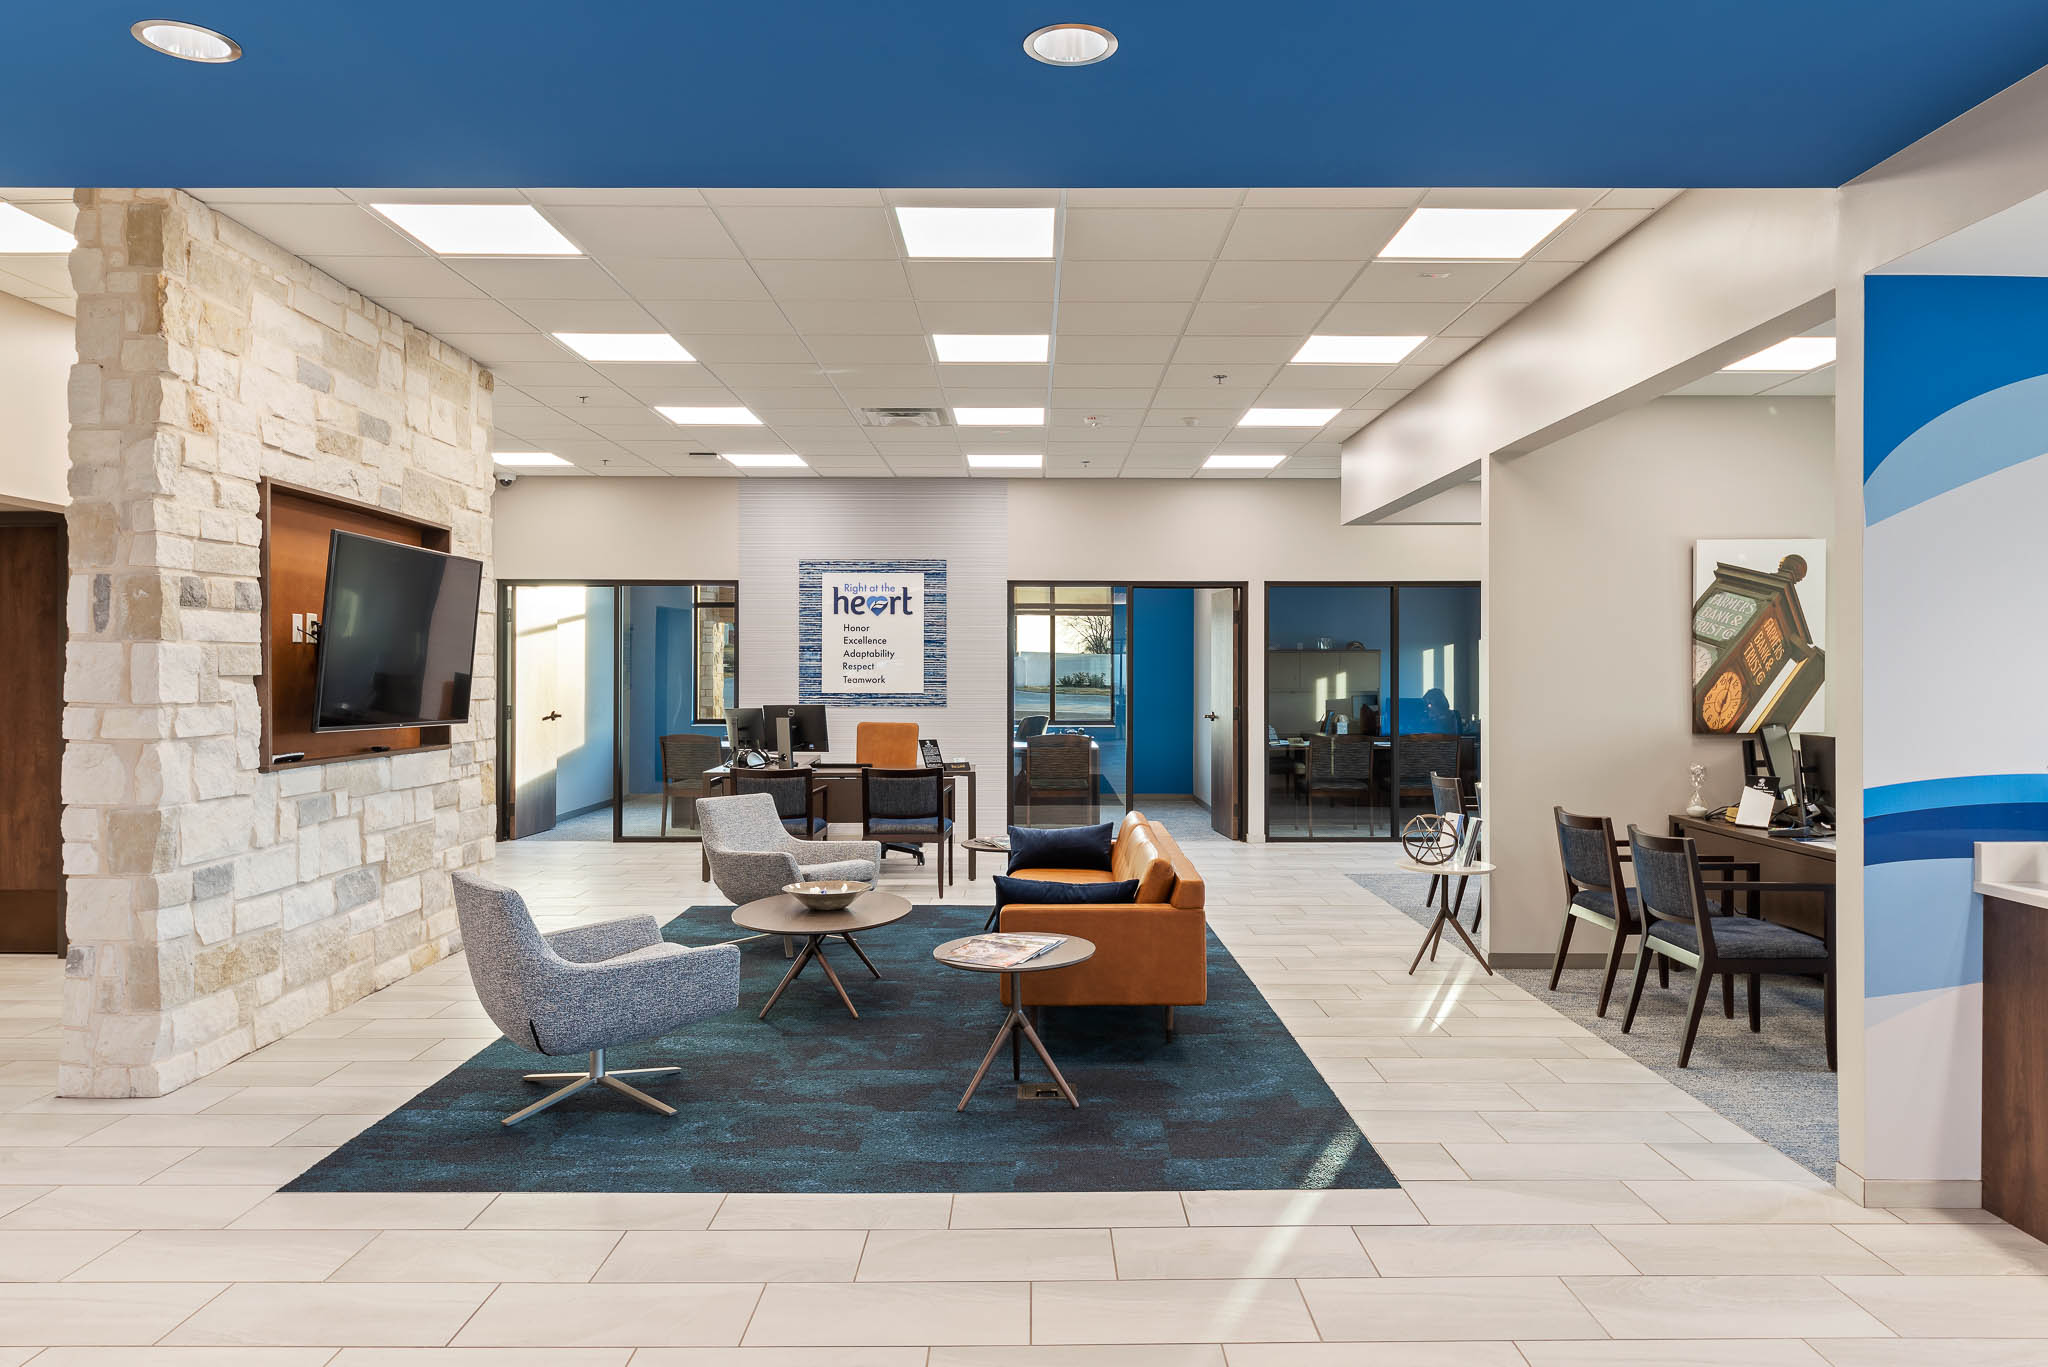 Interior of bank for commercial photography